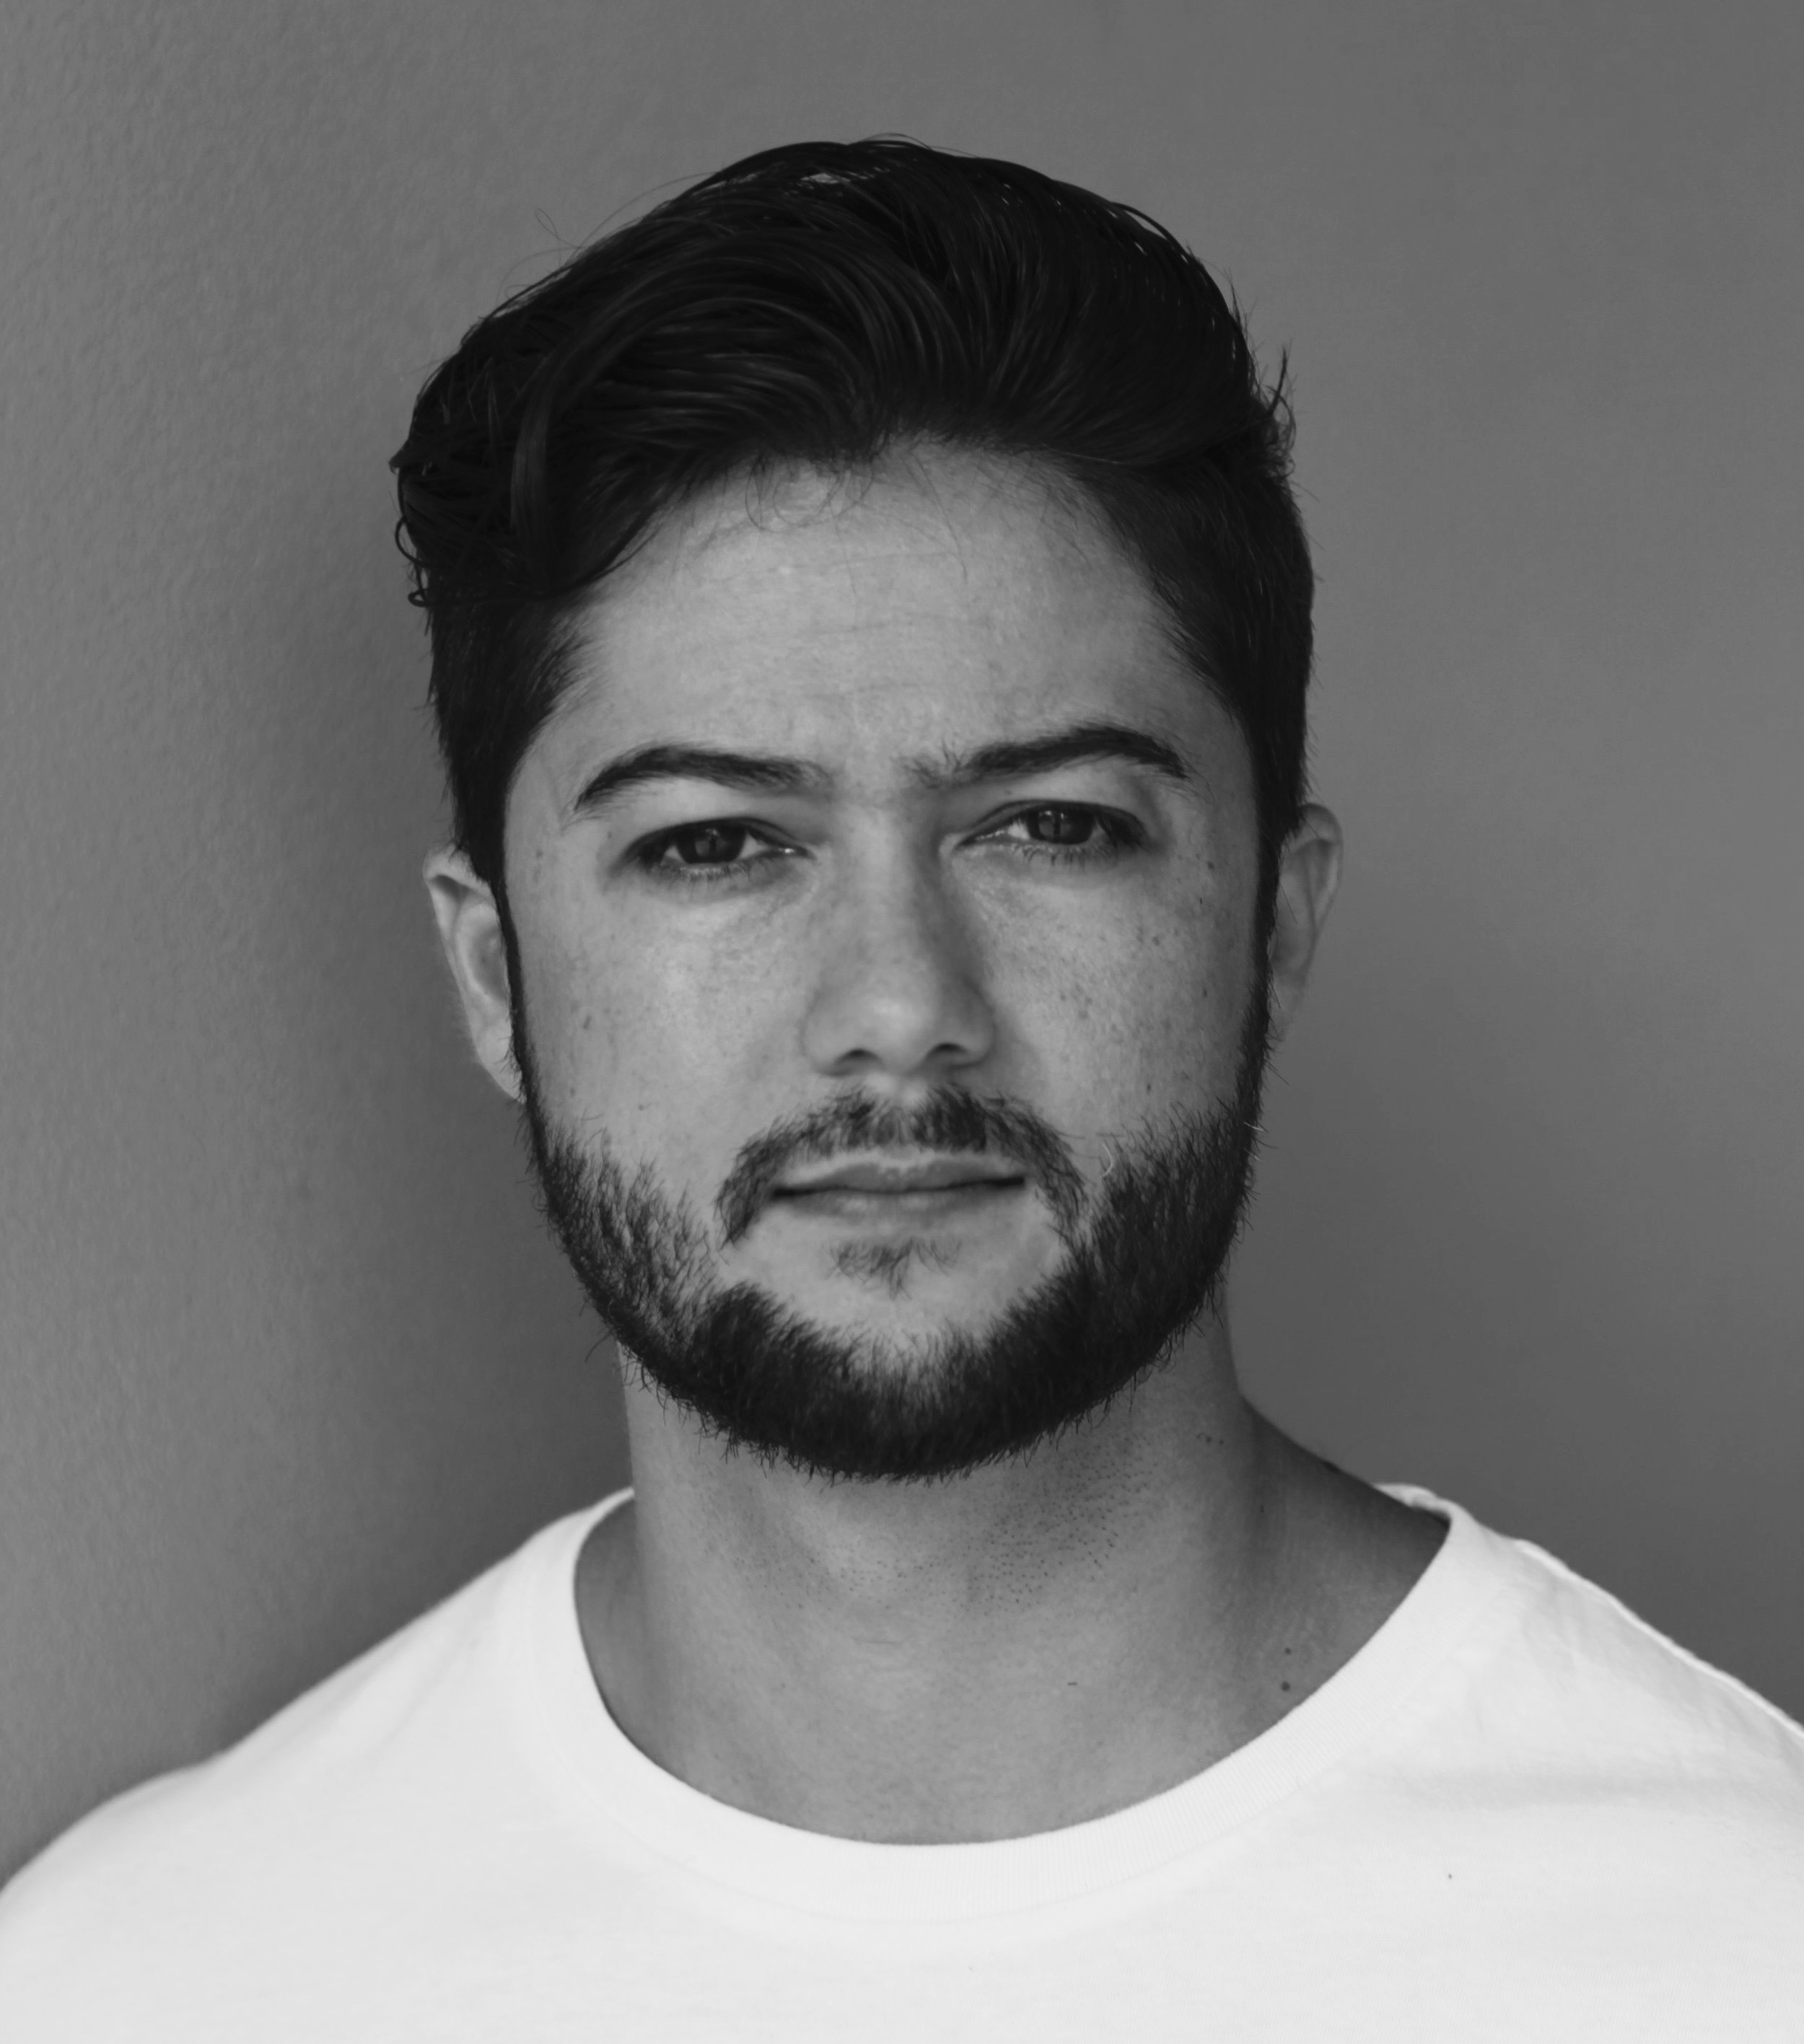 Nigel Turner-Carroll - Director & Co-Creator - Award winning director and actor Nigel Turner-Carroll's credits include The Tap Pack which has most recently featured on The West End after touring Berlin, Beijing 2017 and Edinburgh Fringe festival 2016, winning The